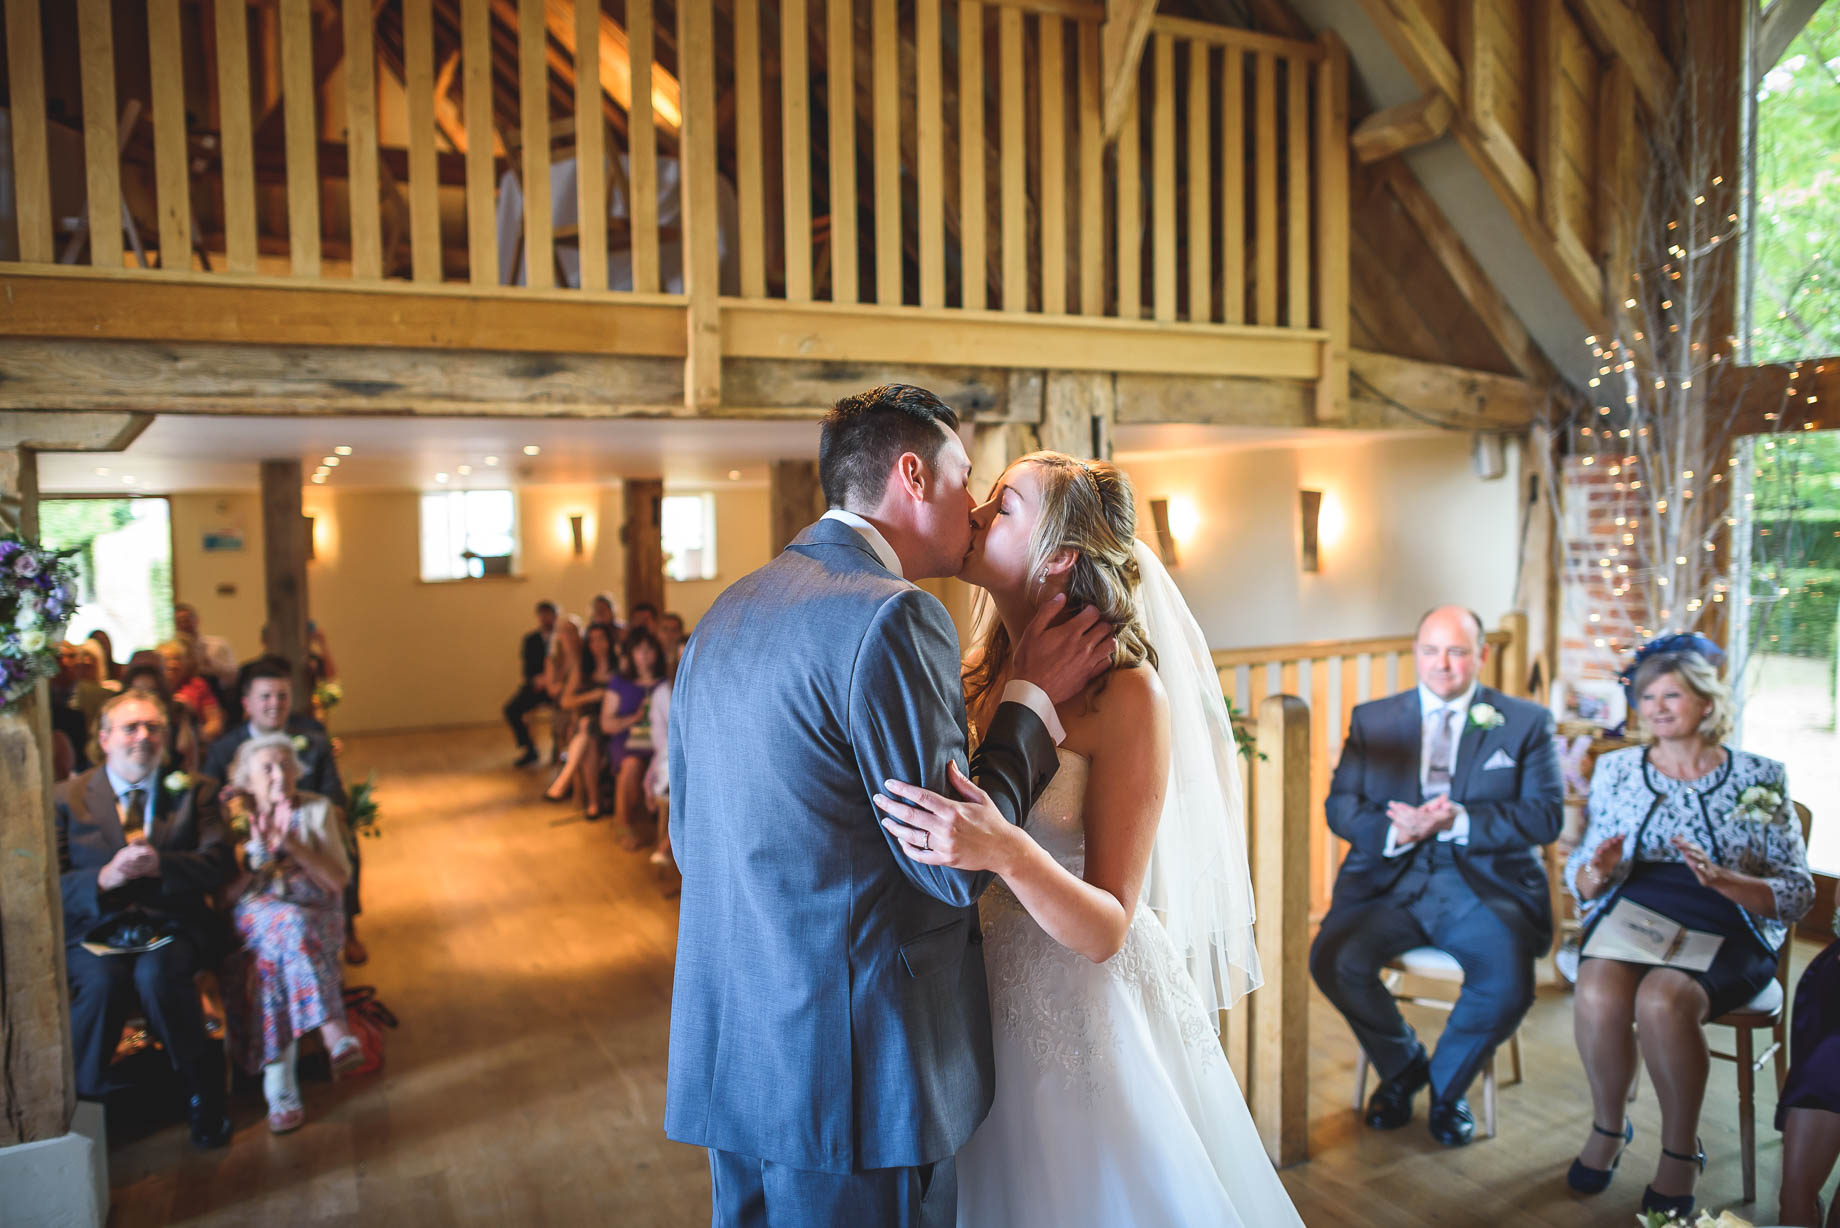 Bury Court Barn wedding photography - Guy Collier - Kirsty and Lewis (64 of 150)